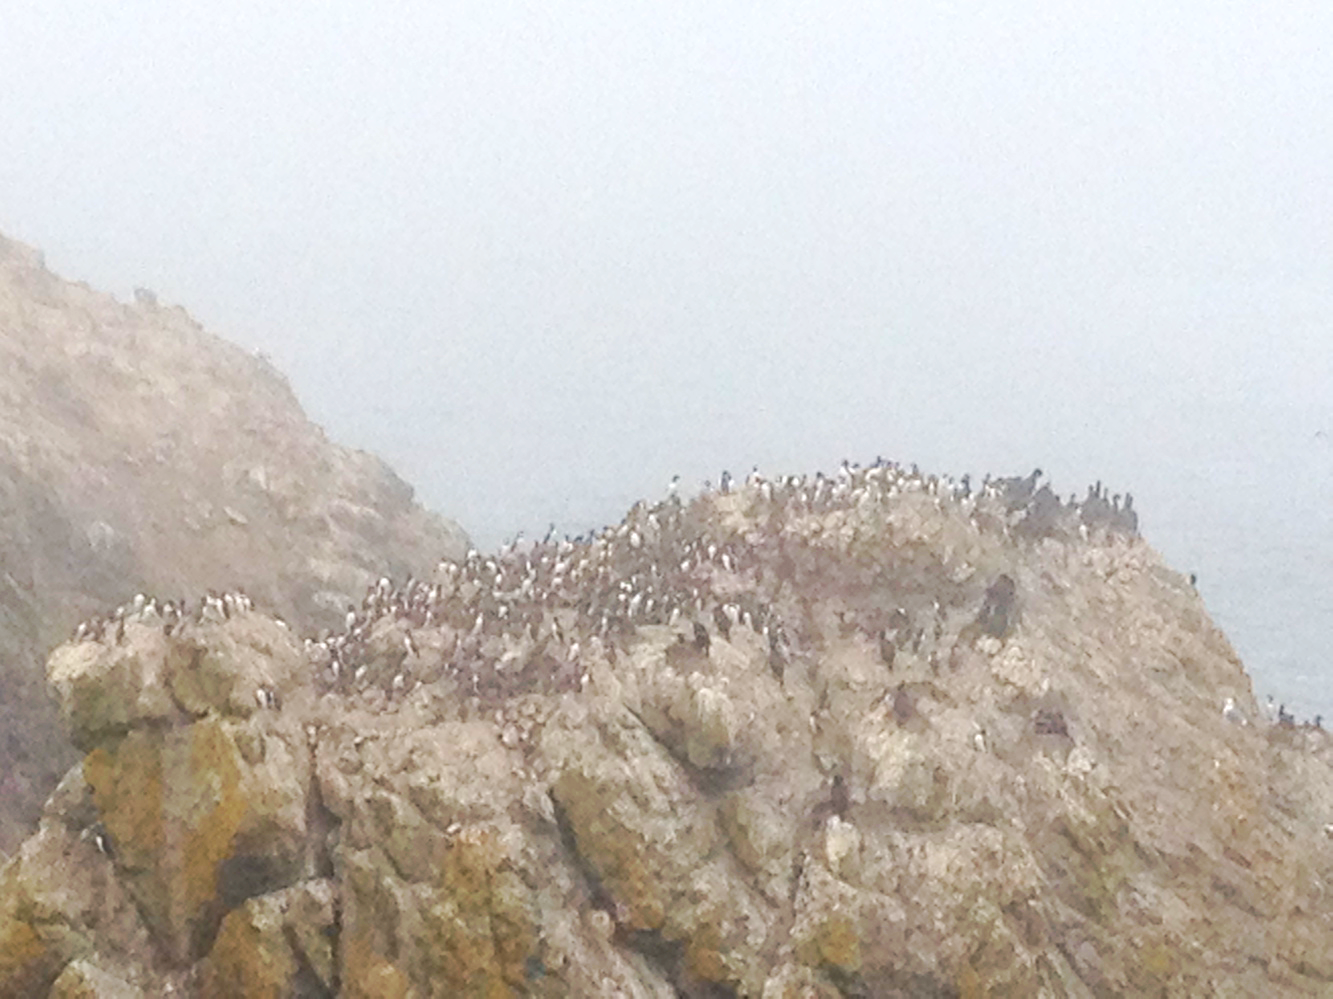 The puffins made a truly horrible screeching noise that will haunt me the rest of my days.